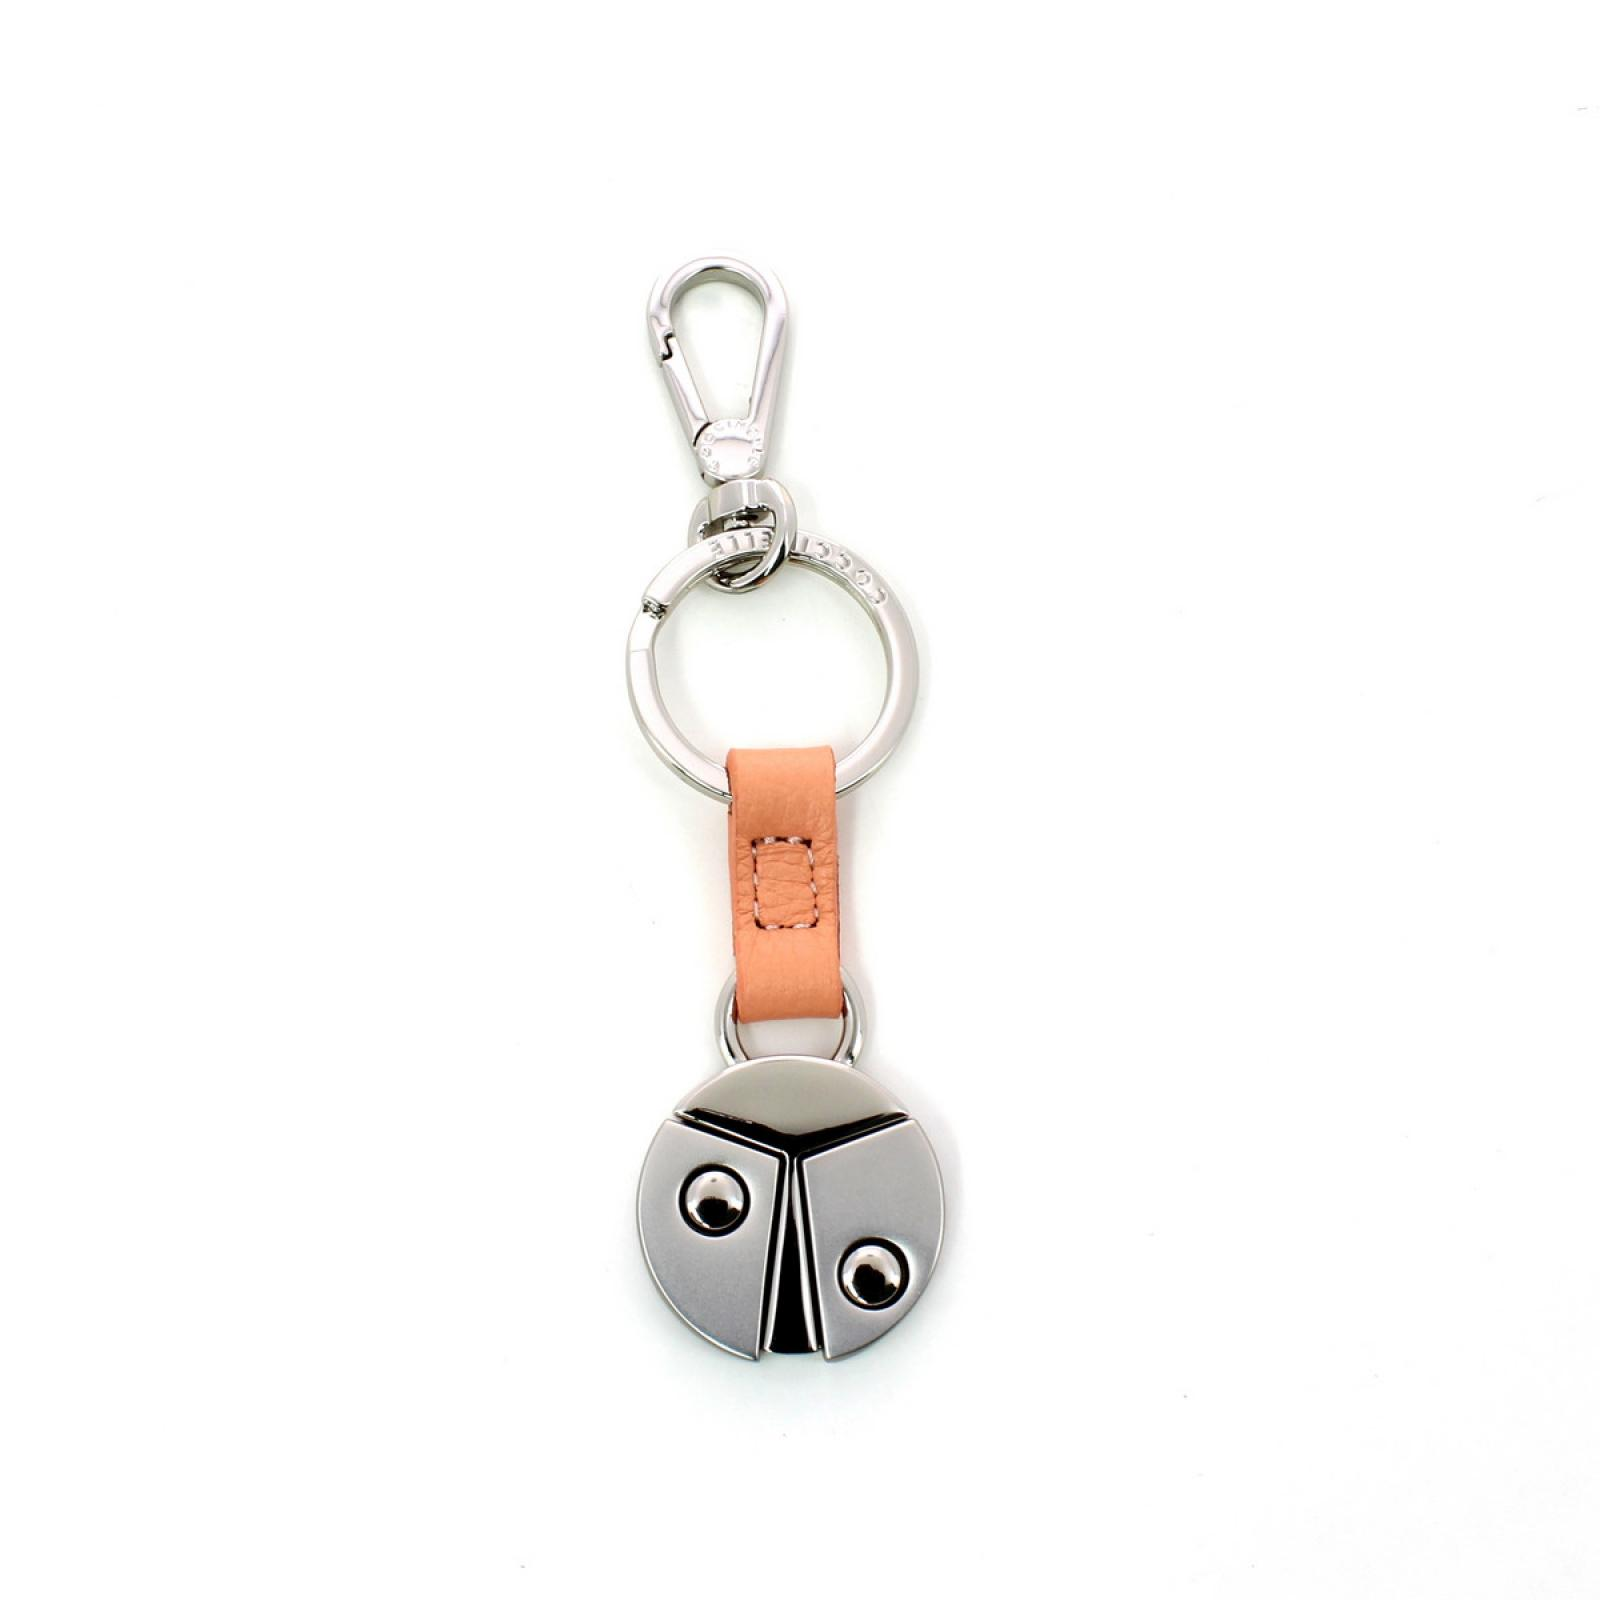 Women's Key Ring-POMPELMO-UN